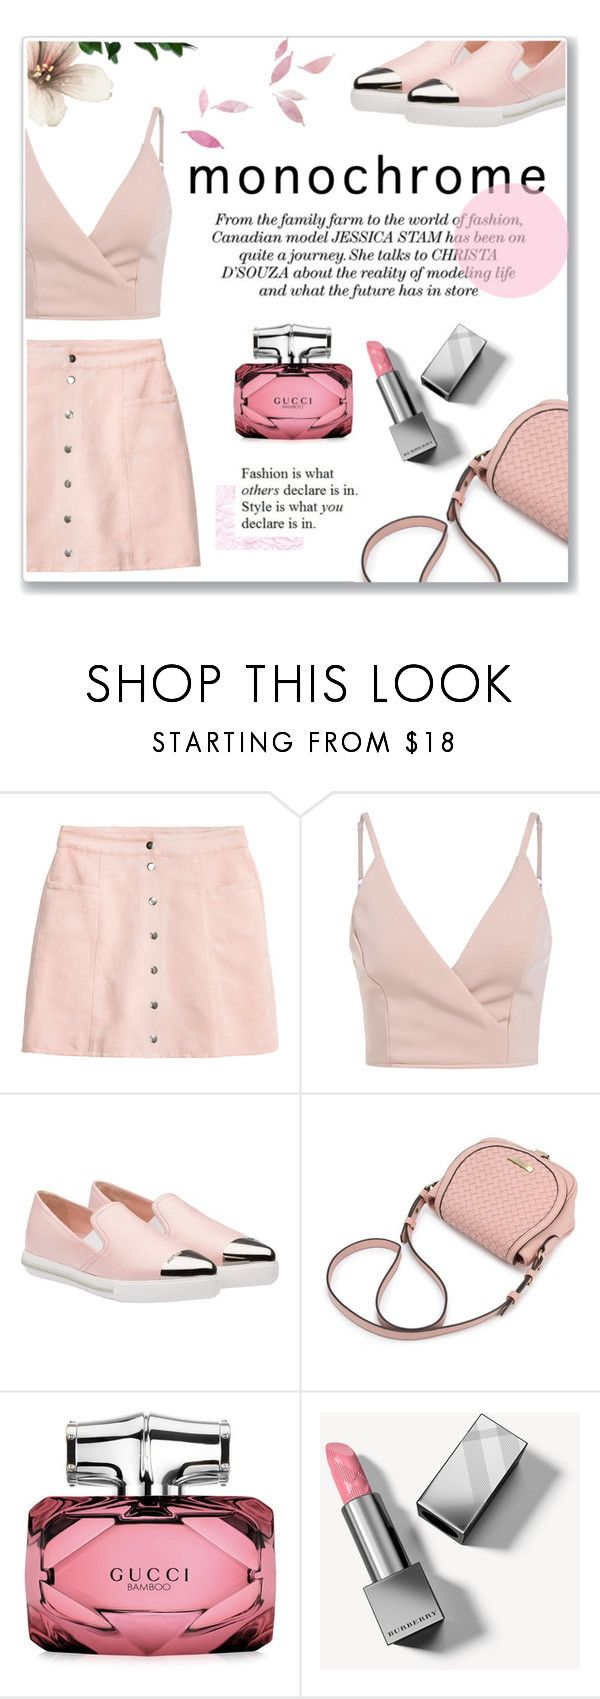 """One Color"" by achernar ❤ liked on Polyvore featuring H&M, Miu Miu, Gucci and Burberry"